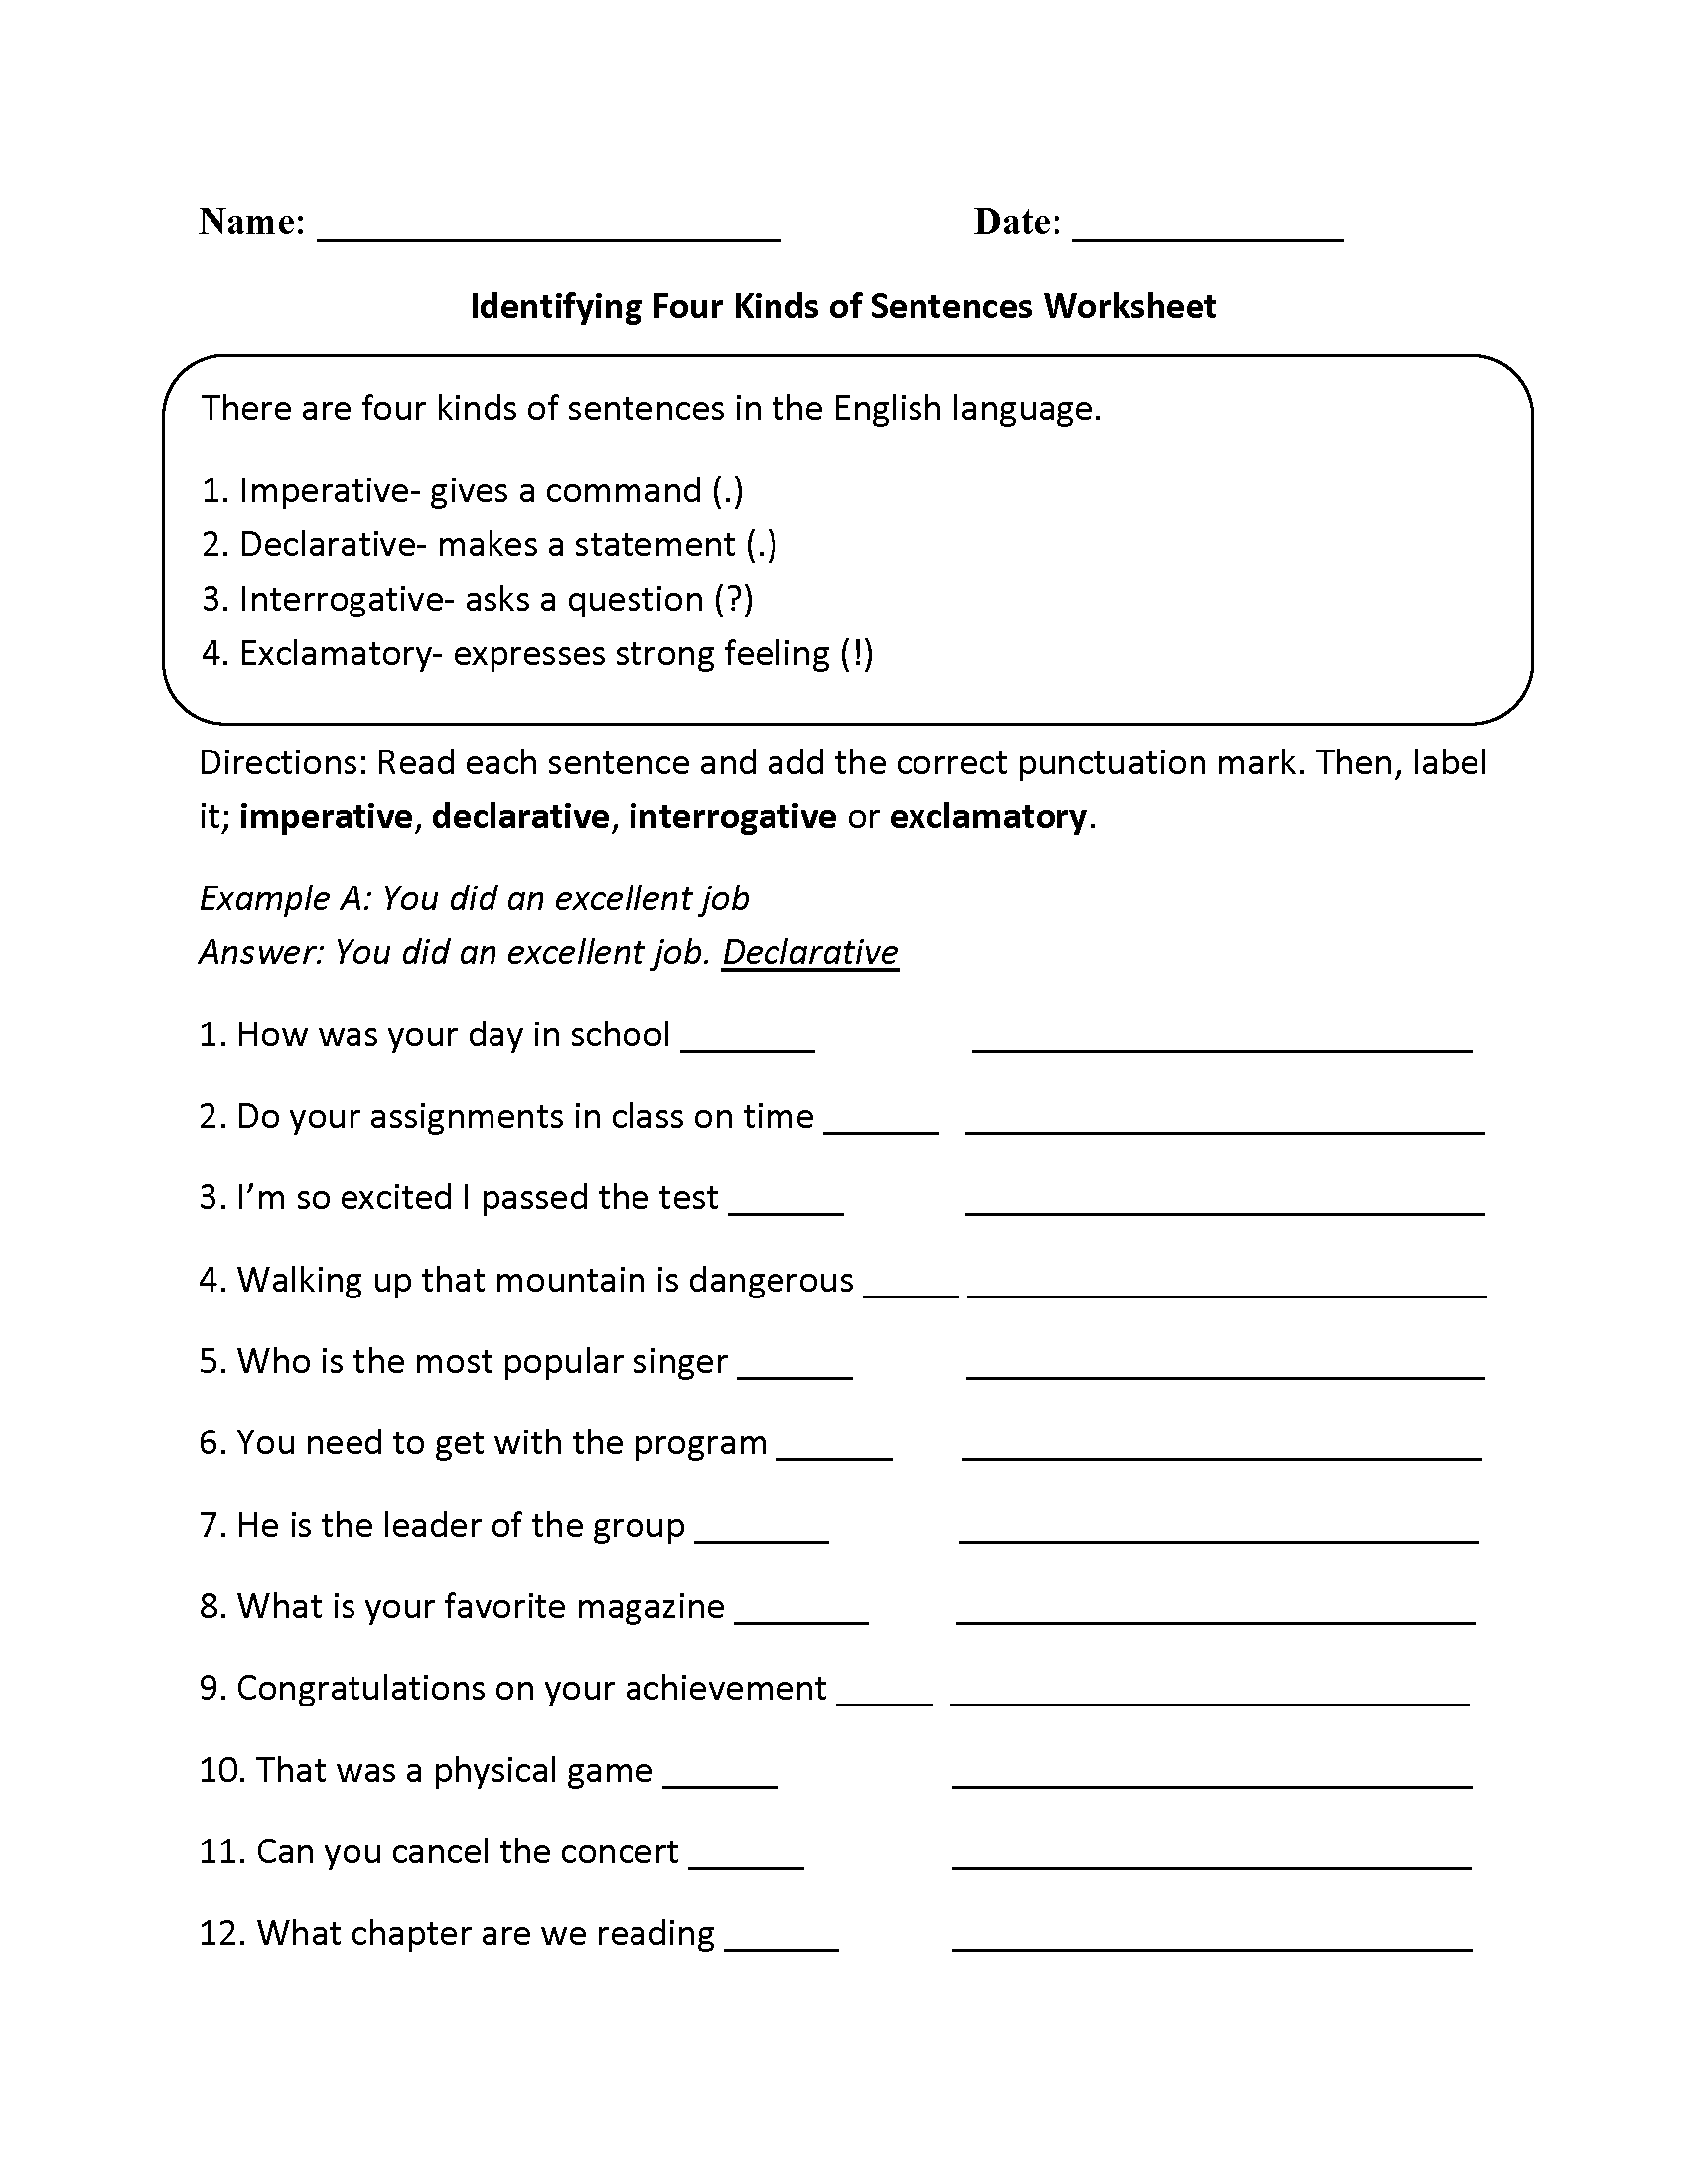 Worksheets Kinds Of Sentences Worksheet kinds of sentences worksheets practicing four worksheet